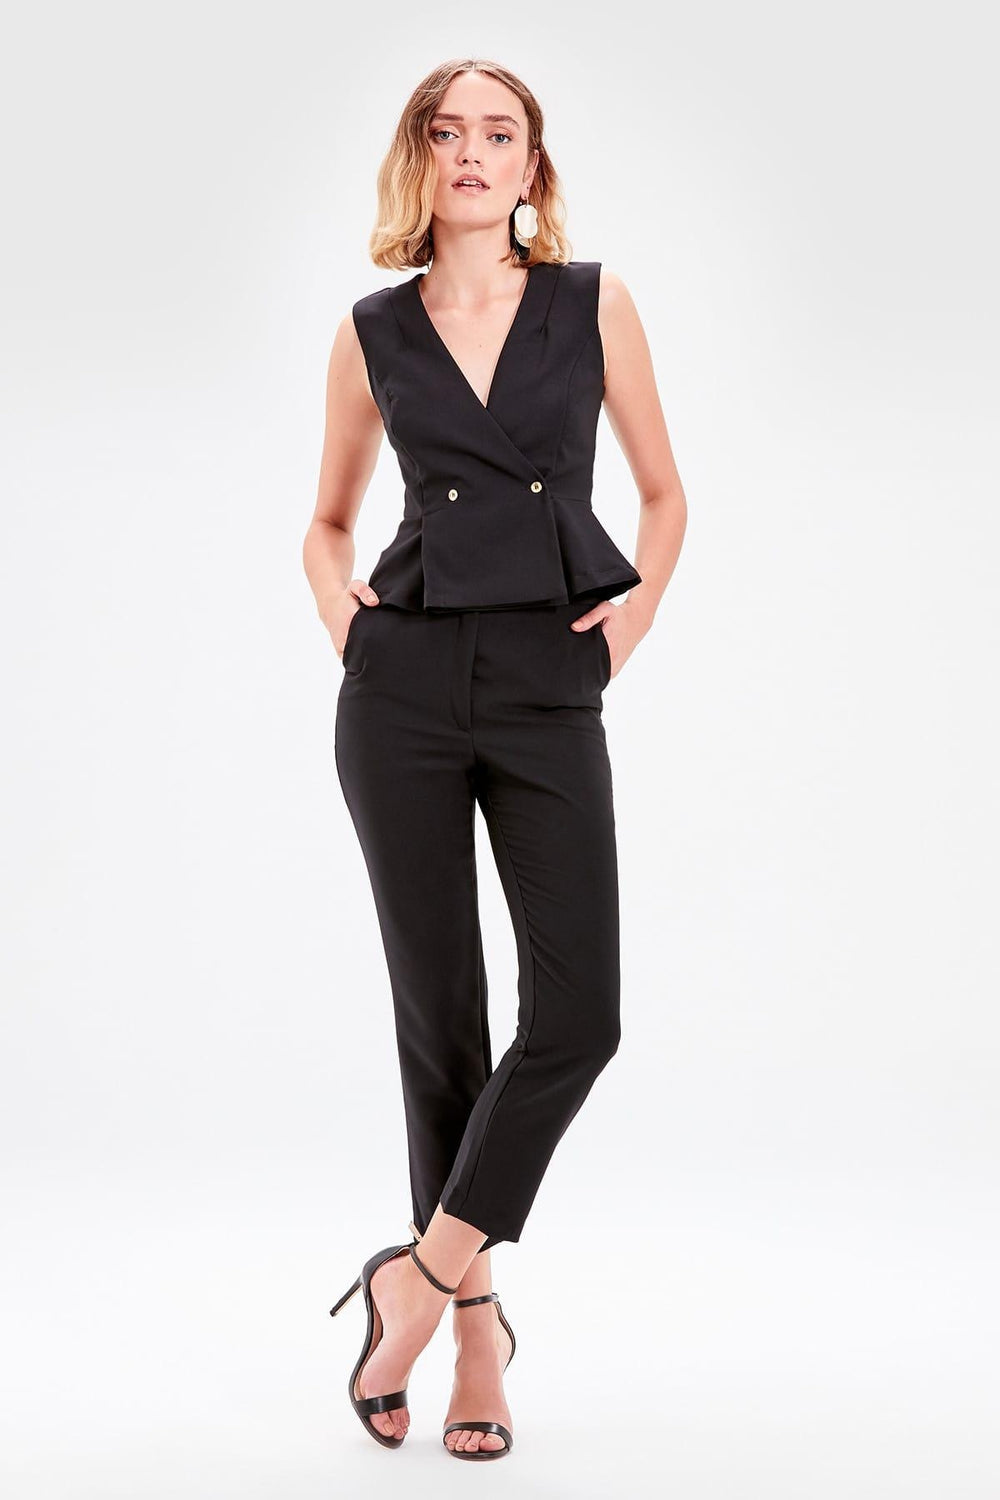 Black Pocket Detail Pants - Top Maxy